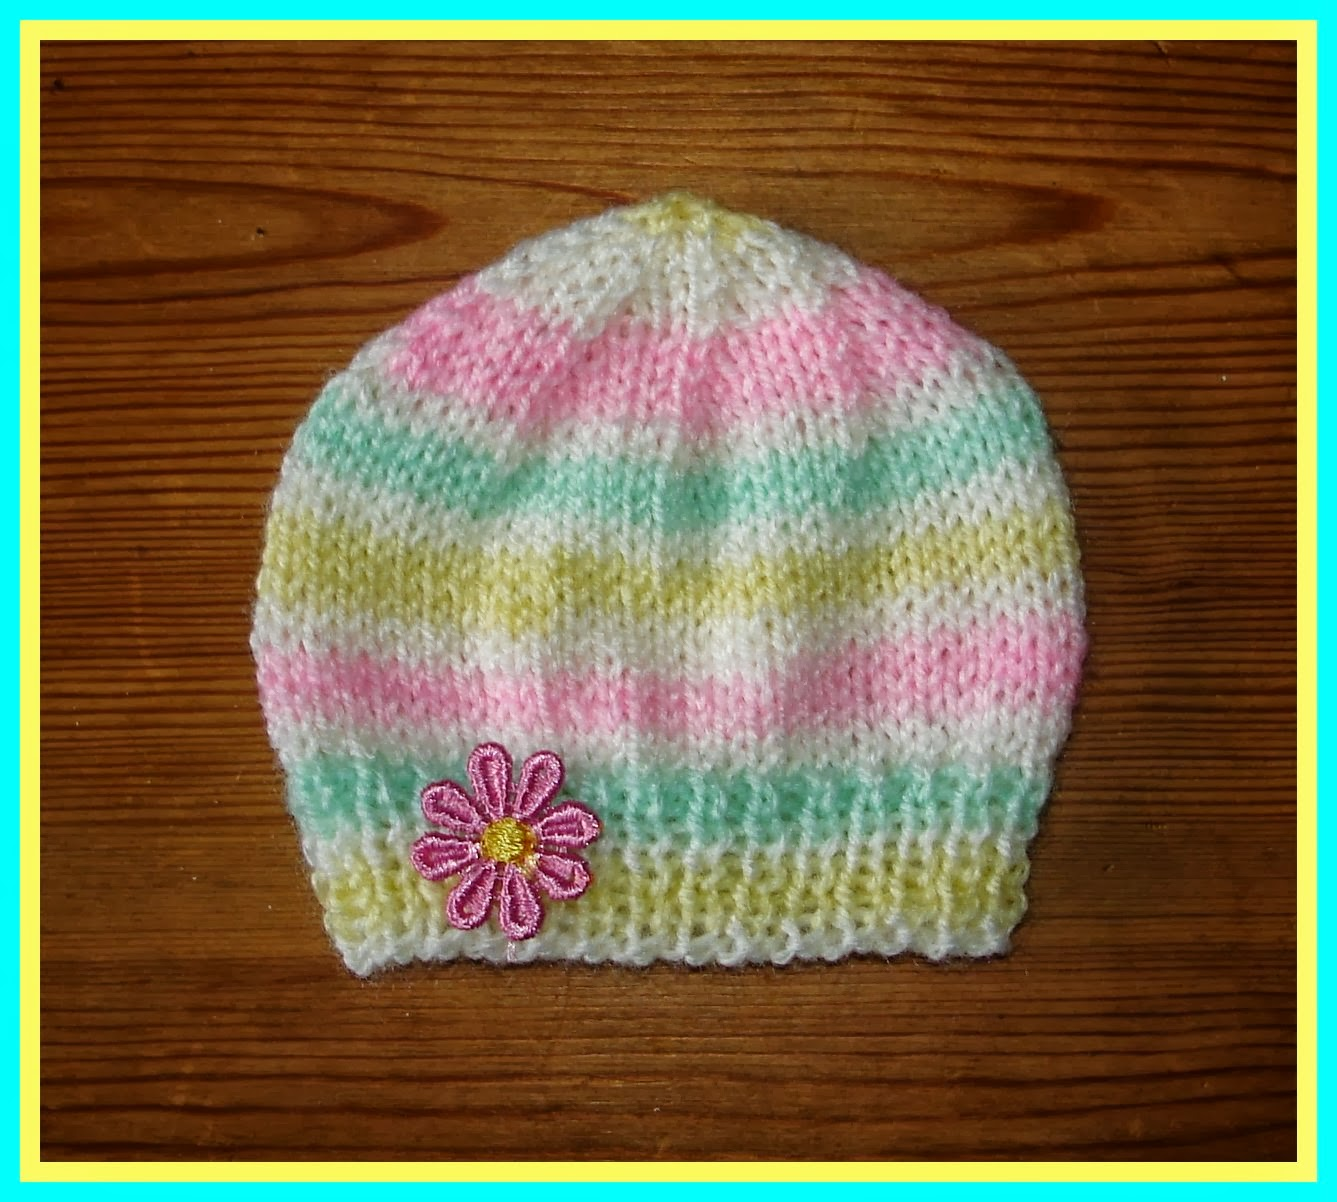 Marianna\'s Lazy Daisy Days: Candystripe Knitted Baby Hats